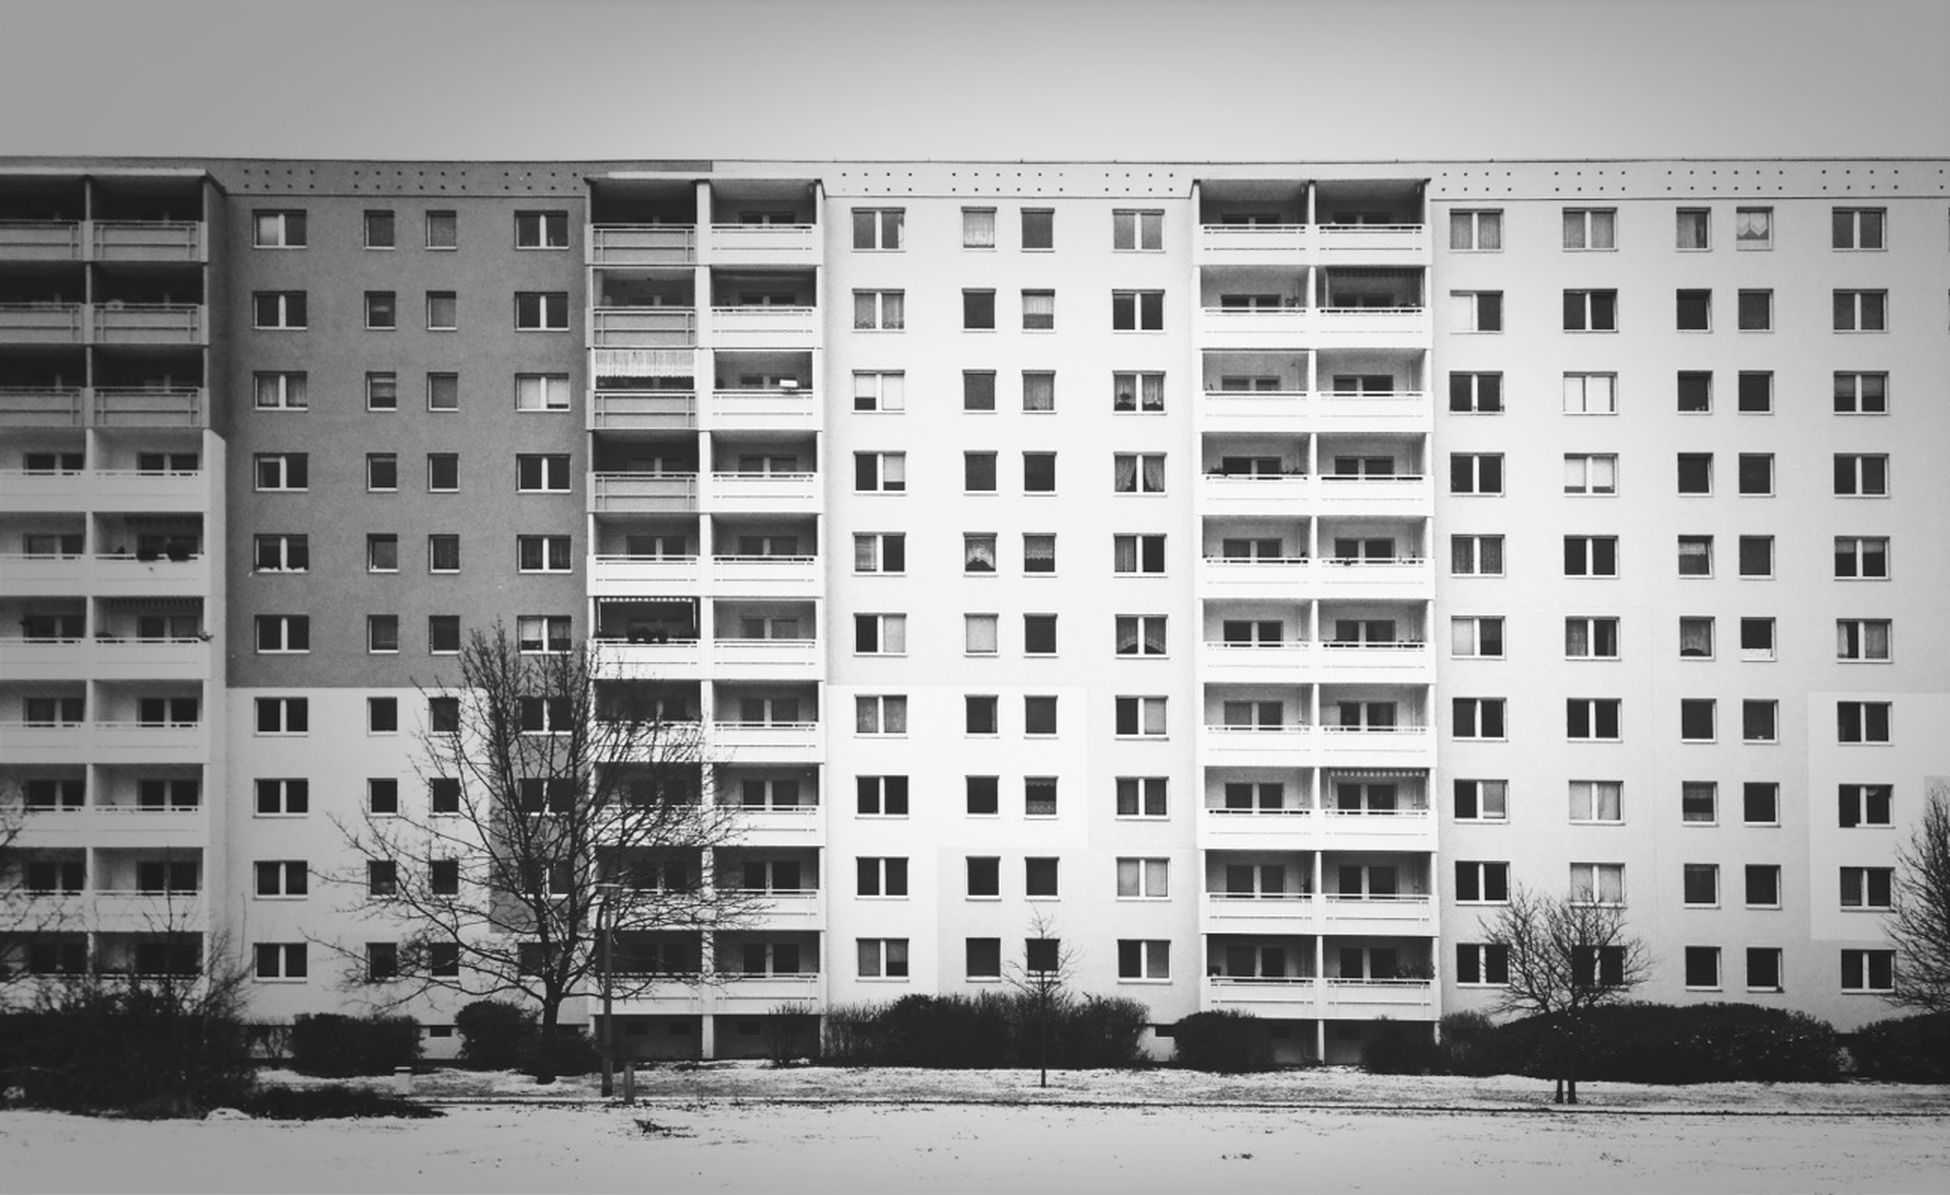 building exterior, architecture, building, residential structure, city, built structure, window, apartment, residential building, balcony, outdoors, city life, office building, day, modern, geometry, modern, development, urban, city life, contemporary